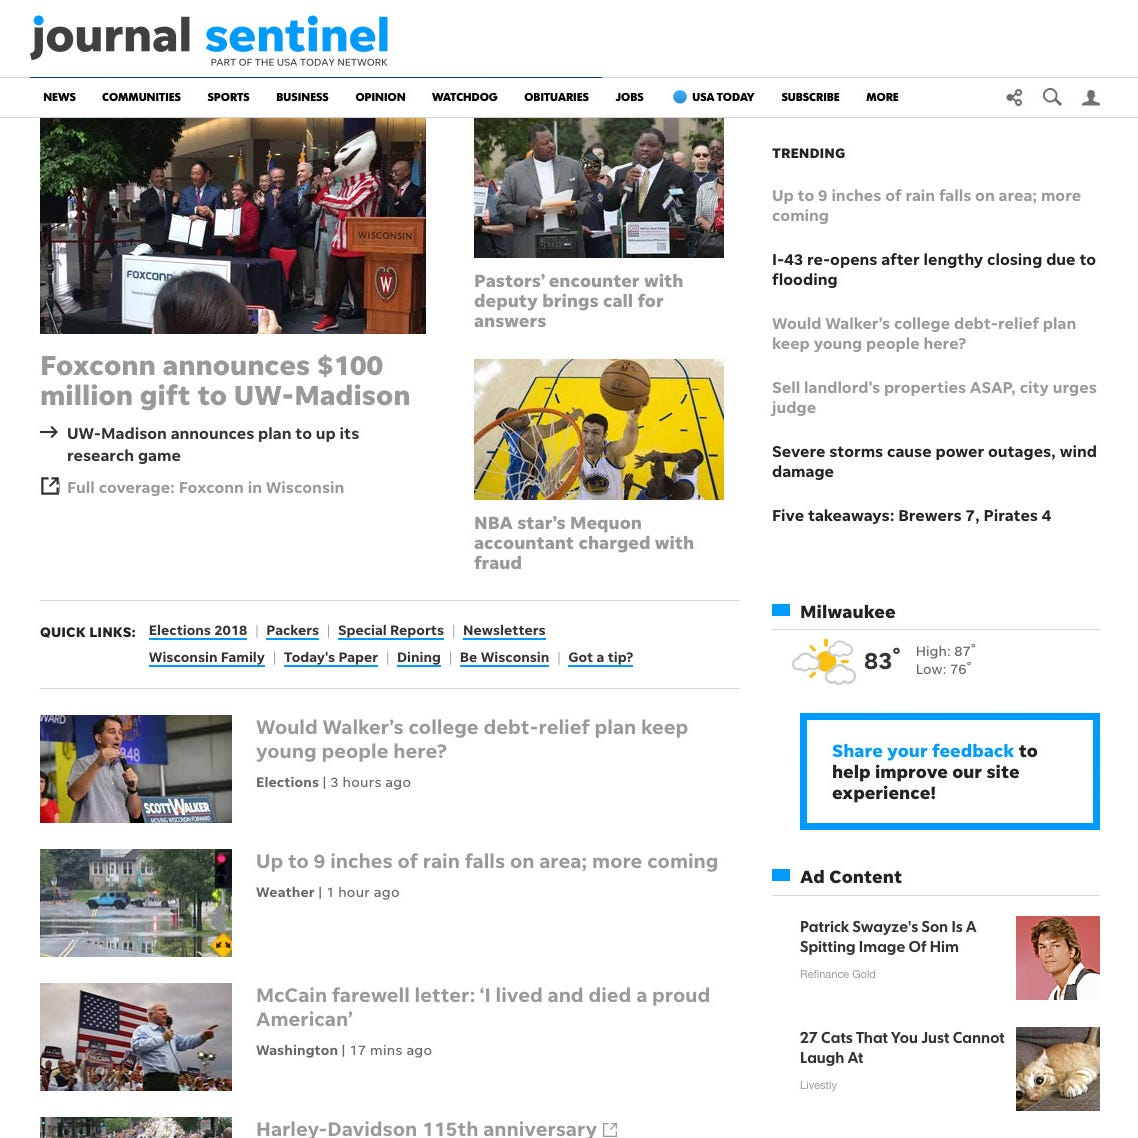 The 5 digital benefits of a Journal Sentinel subscription